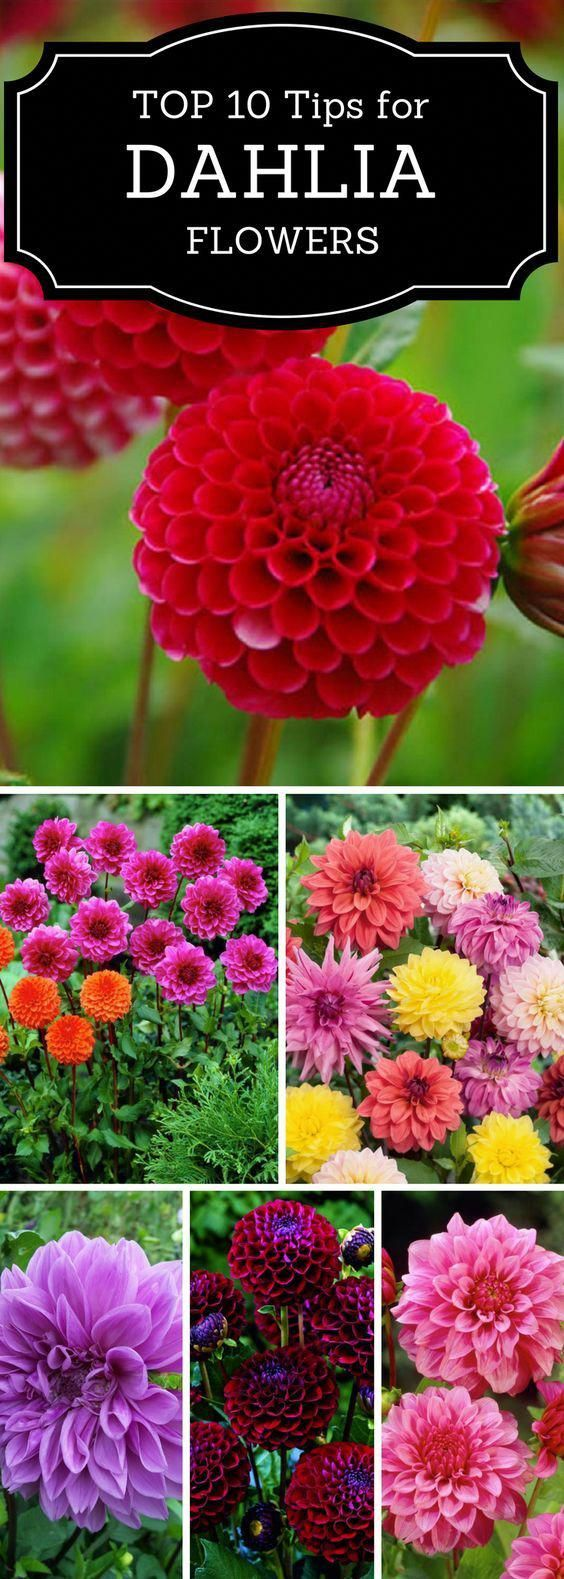 Top 10 Tips On How To Plant Grow And Care For Dahlia Flowers Read These Tips For Gardening Dahlia Flowers Orga Dahlia Flower Planting Flowers Flower Farm